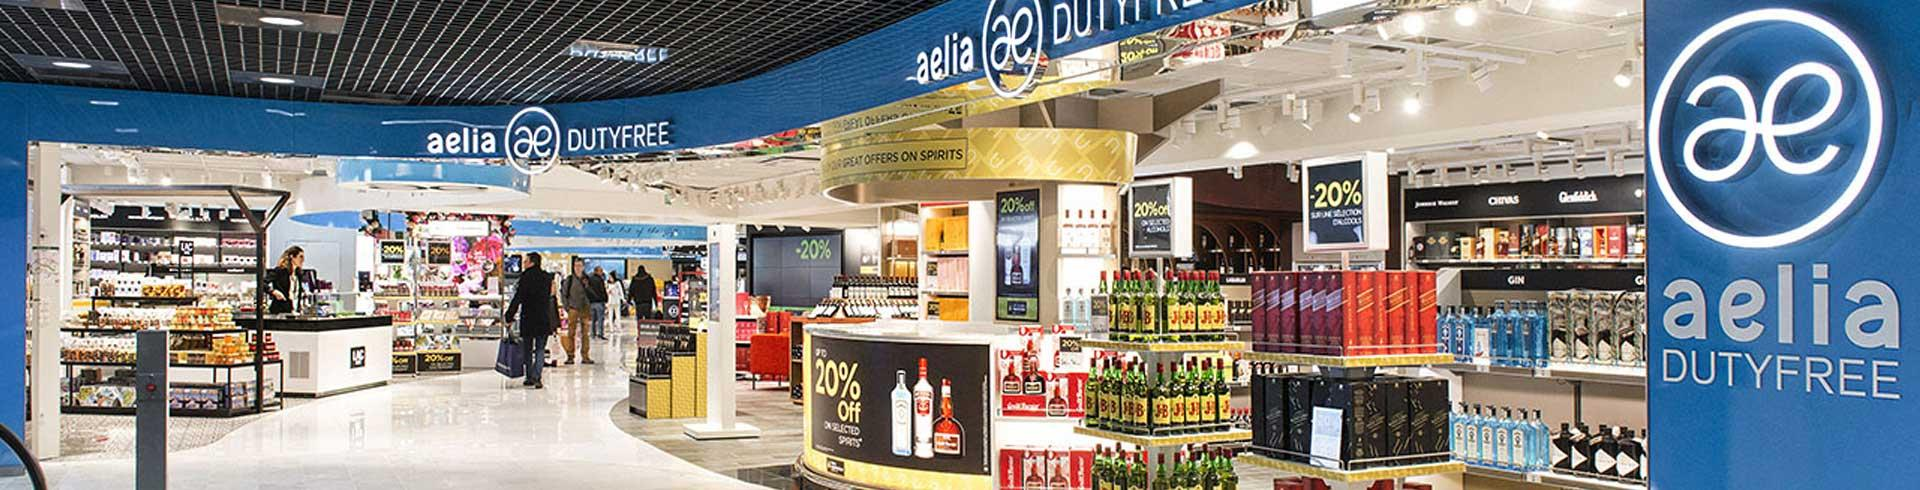 aelia duty free alcools parfums terminal 2 boutiques services la promenade nice. Black Bedroom Furniture Sets. Home Design Ideas